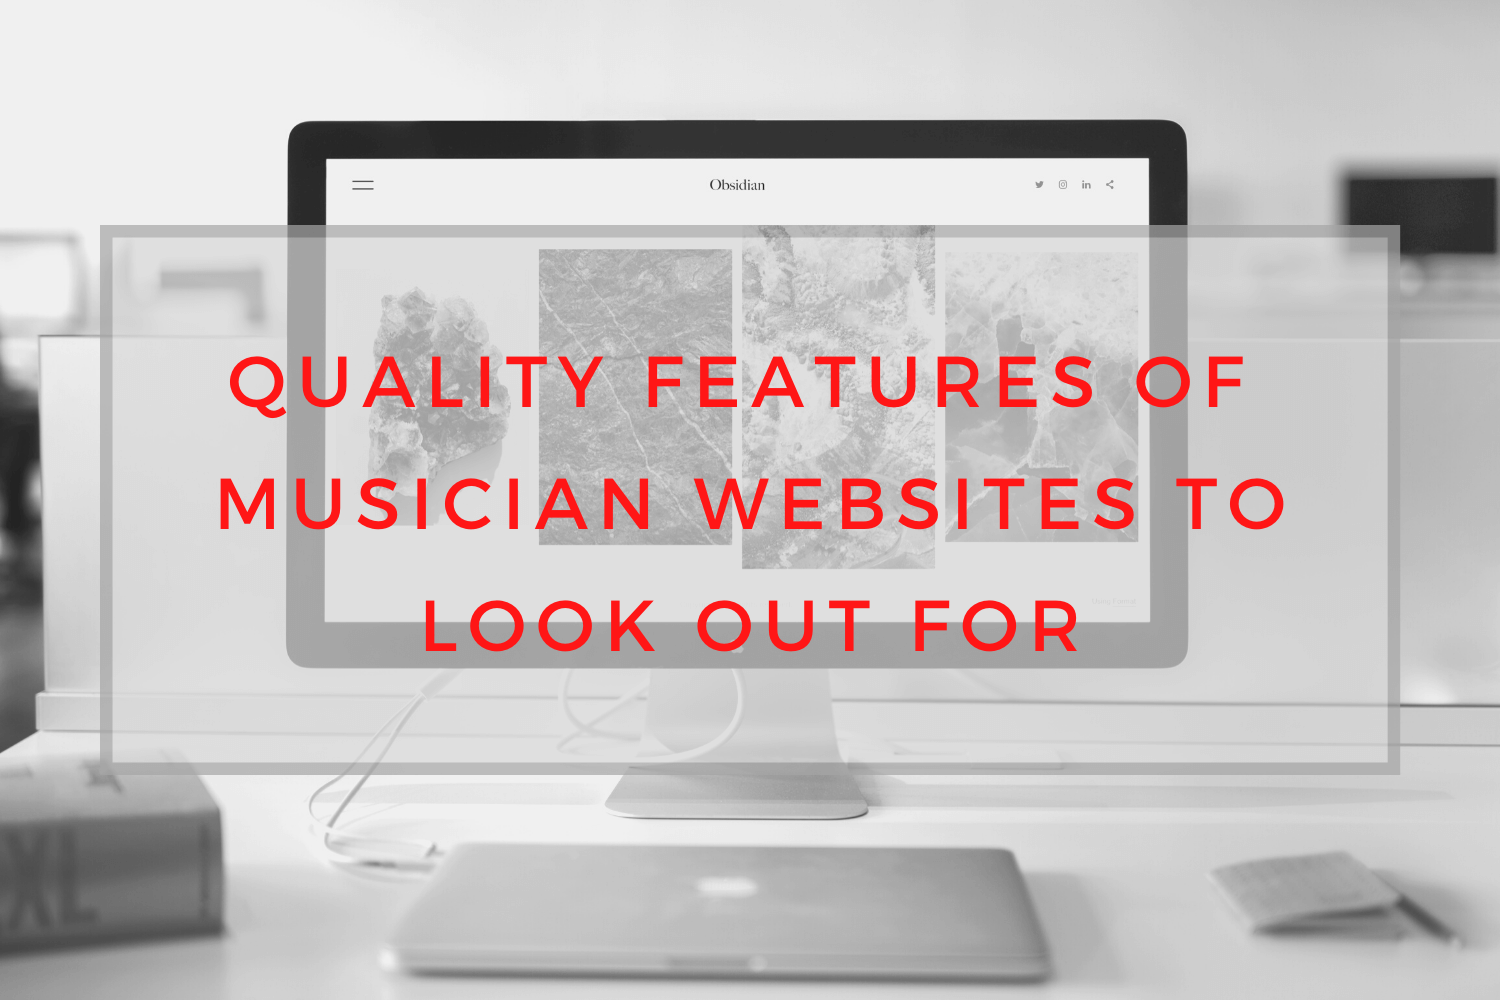 Quality features of musician websites, saralenaprobst.com, Blog about Music, Music Blog, BlackbirdPunk, Blackbirdpunk Consulting, Digital Consulting for the Music Industry, music industry digital entertainment agency, Berlin, berlin, digital, work digital, freelancer digital music industry